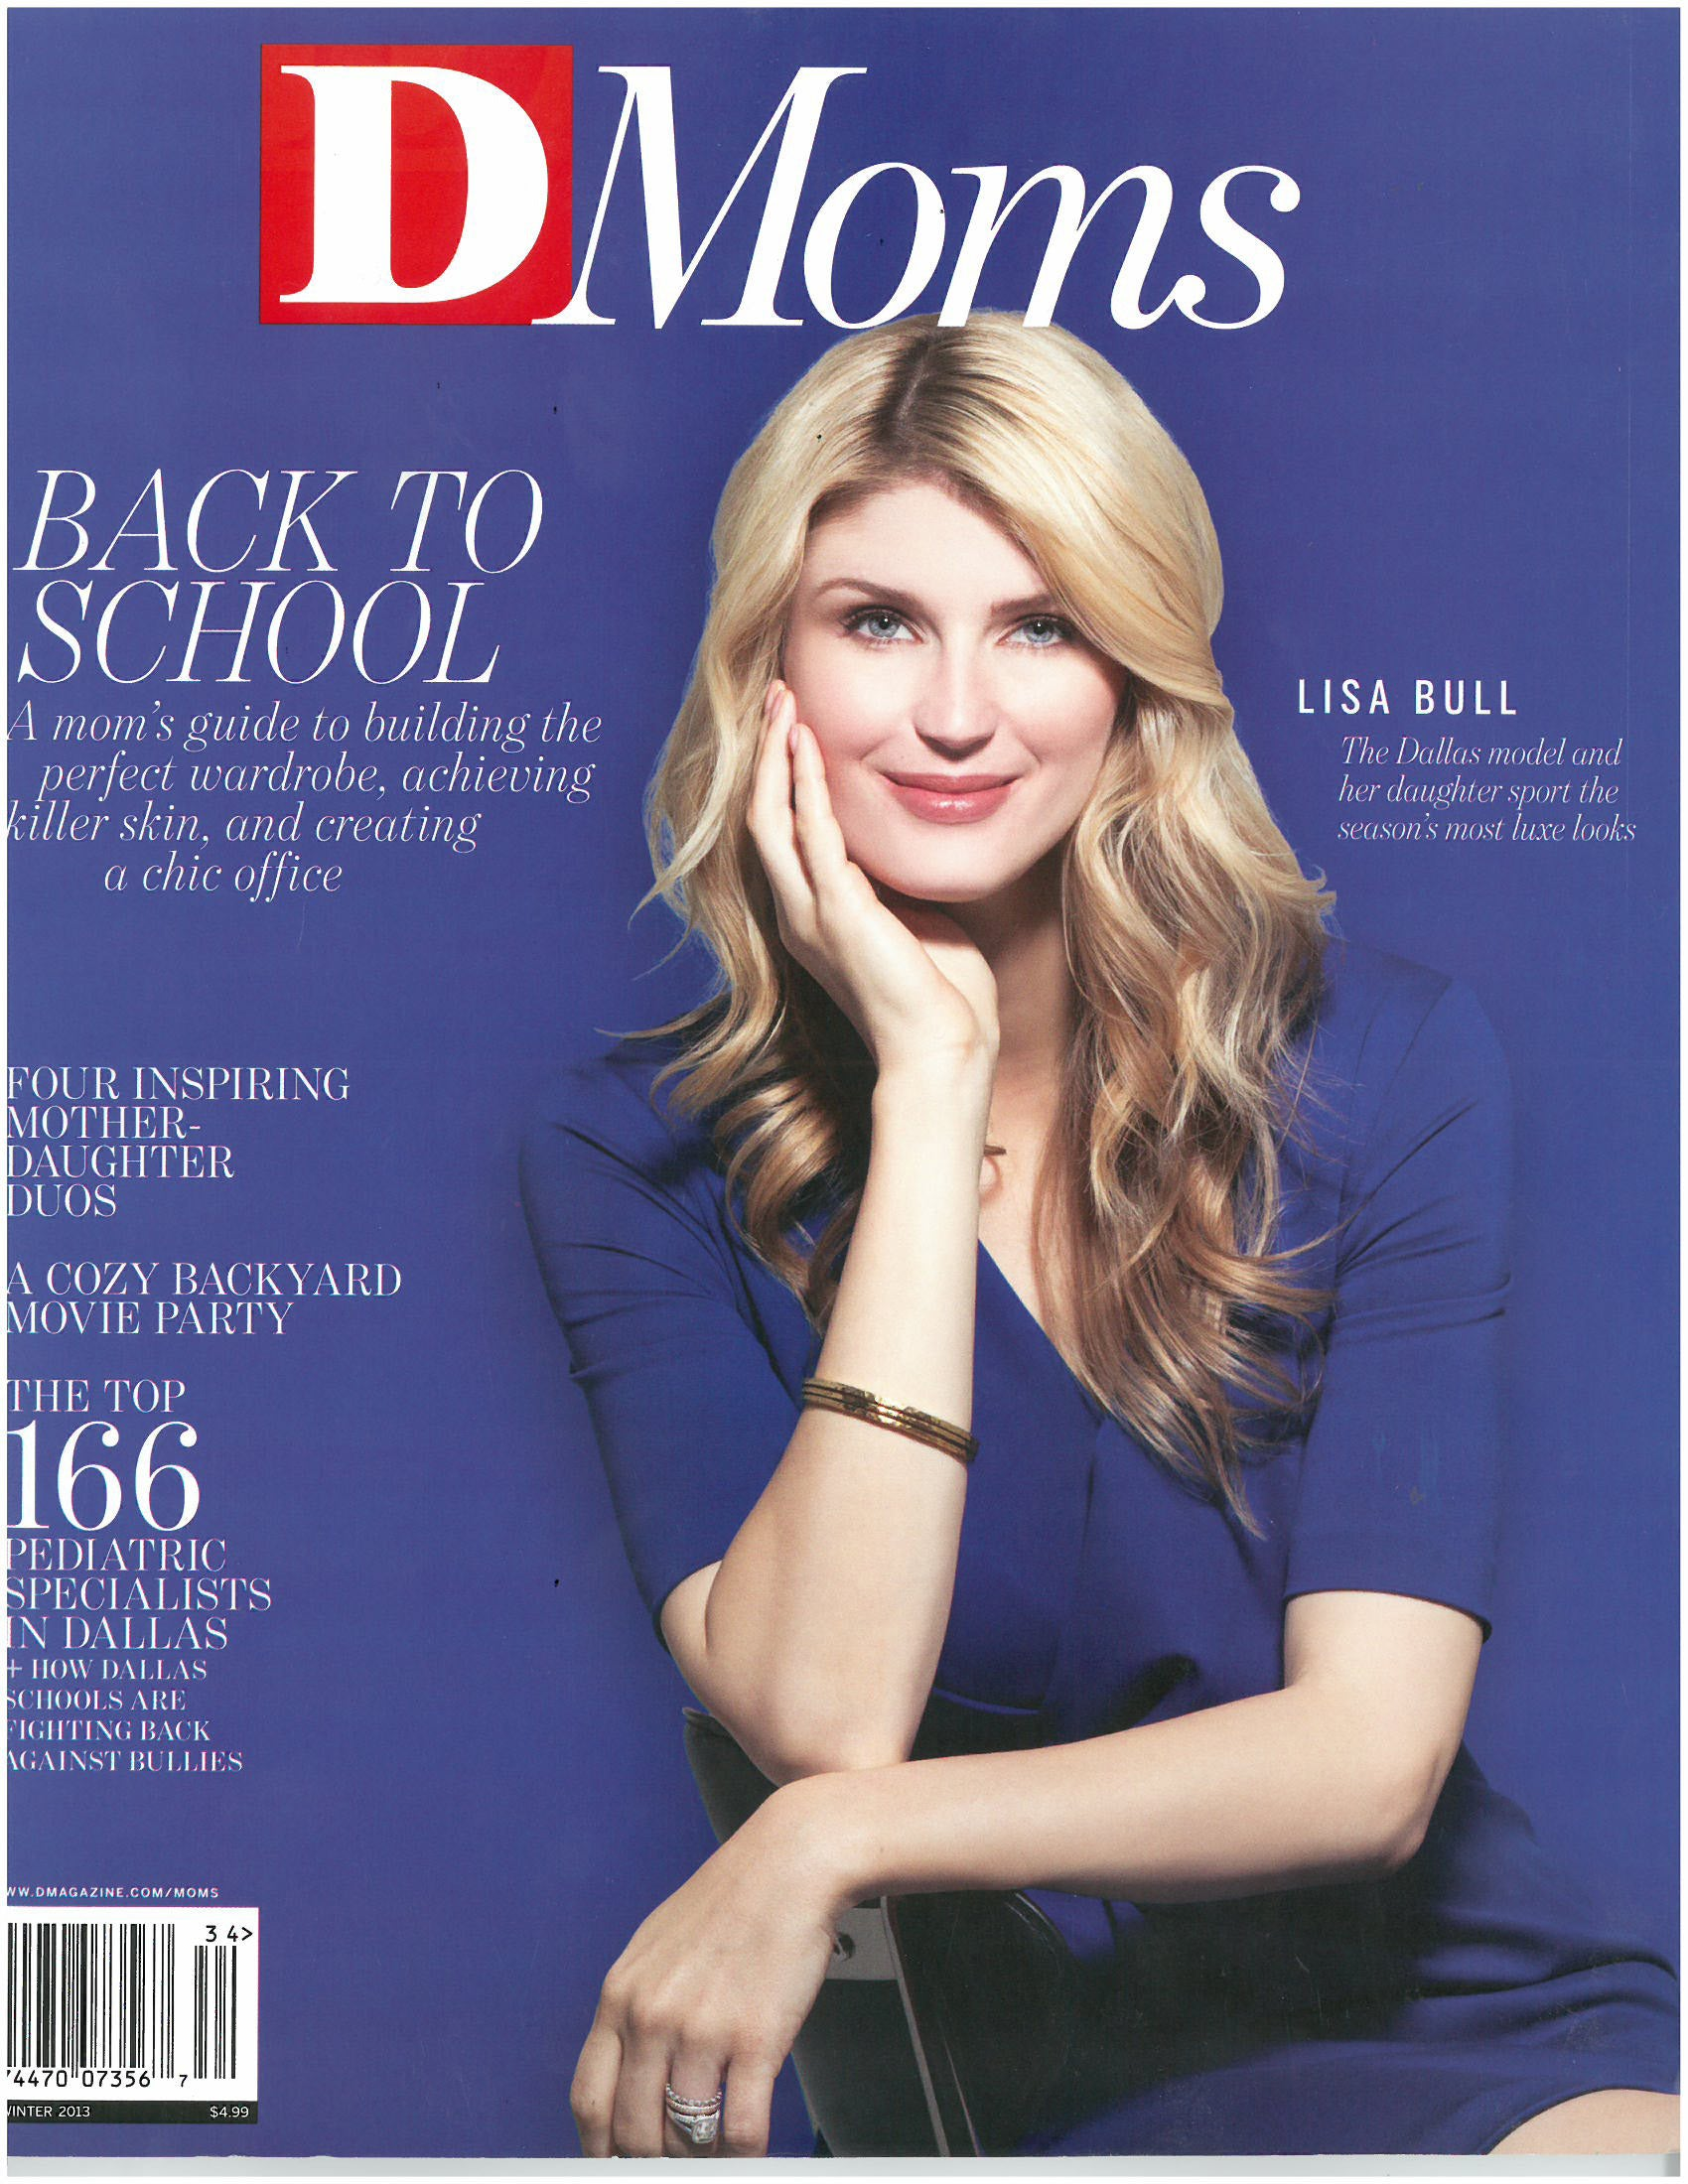 DMoms Magazine cover, Winter 2011